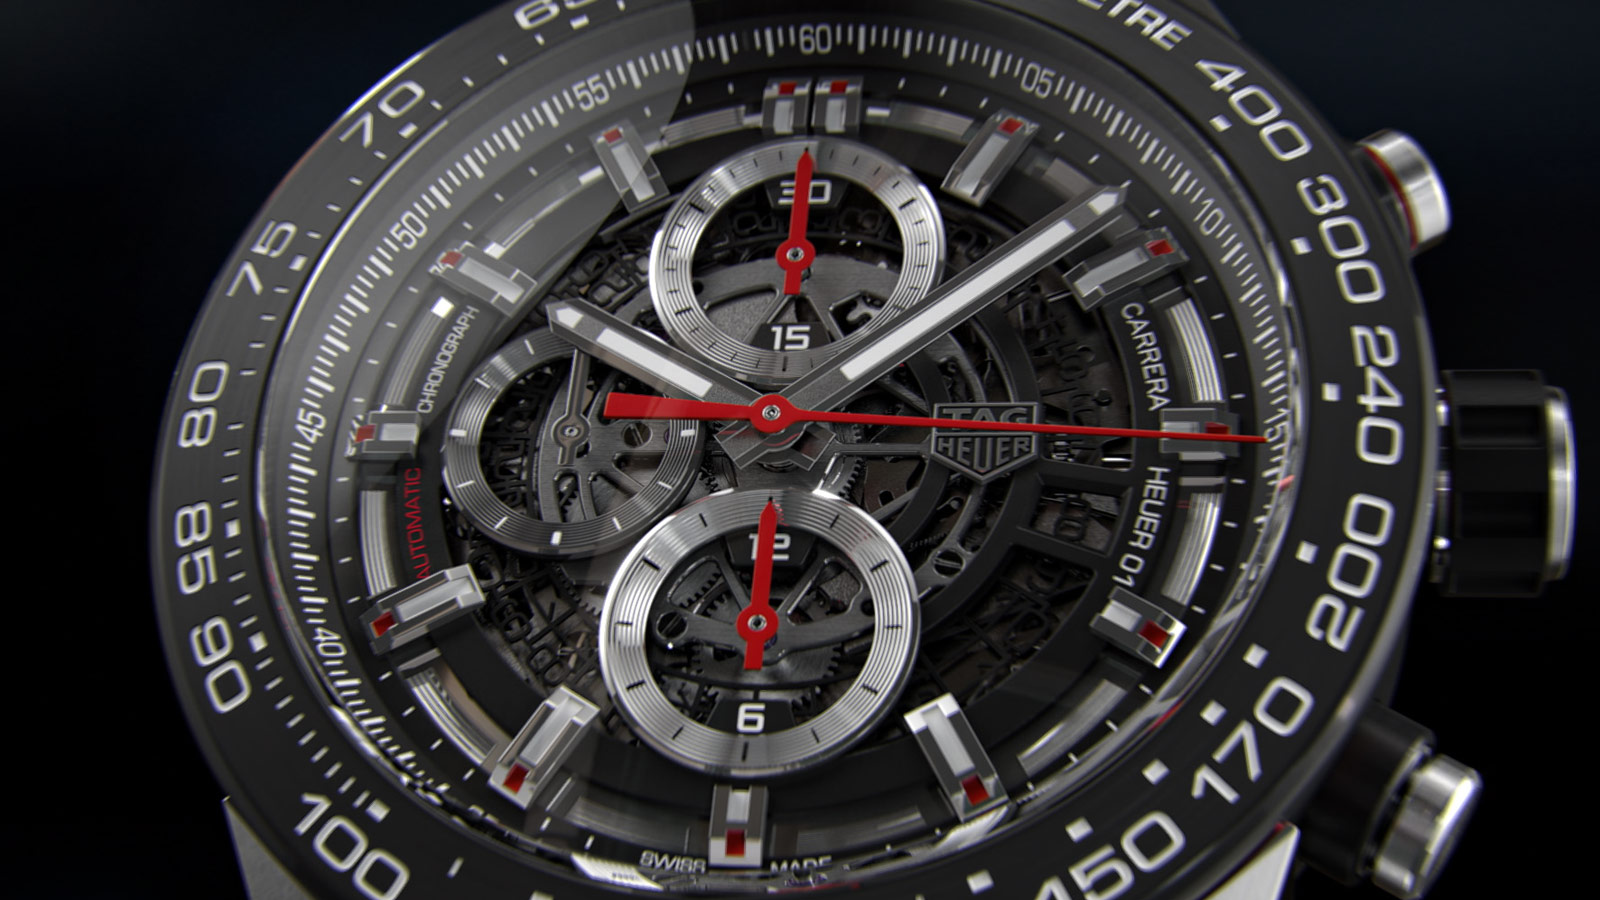 138bee1fced The CH01 opening the film LET VIEWERS EXPERIENCE THE TAG HEUER mechanical  watch MATERIALS AND FINISHINGS